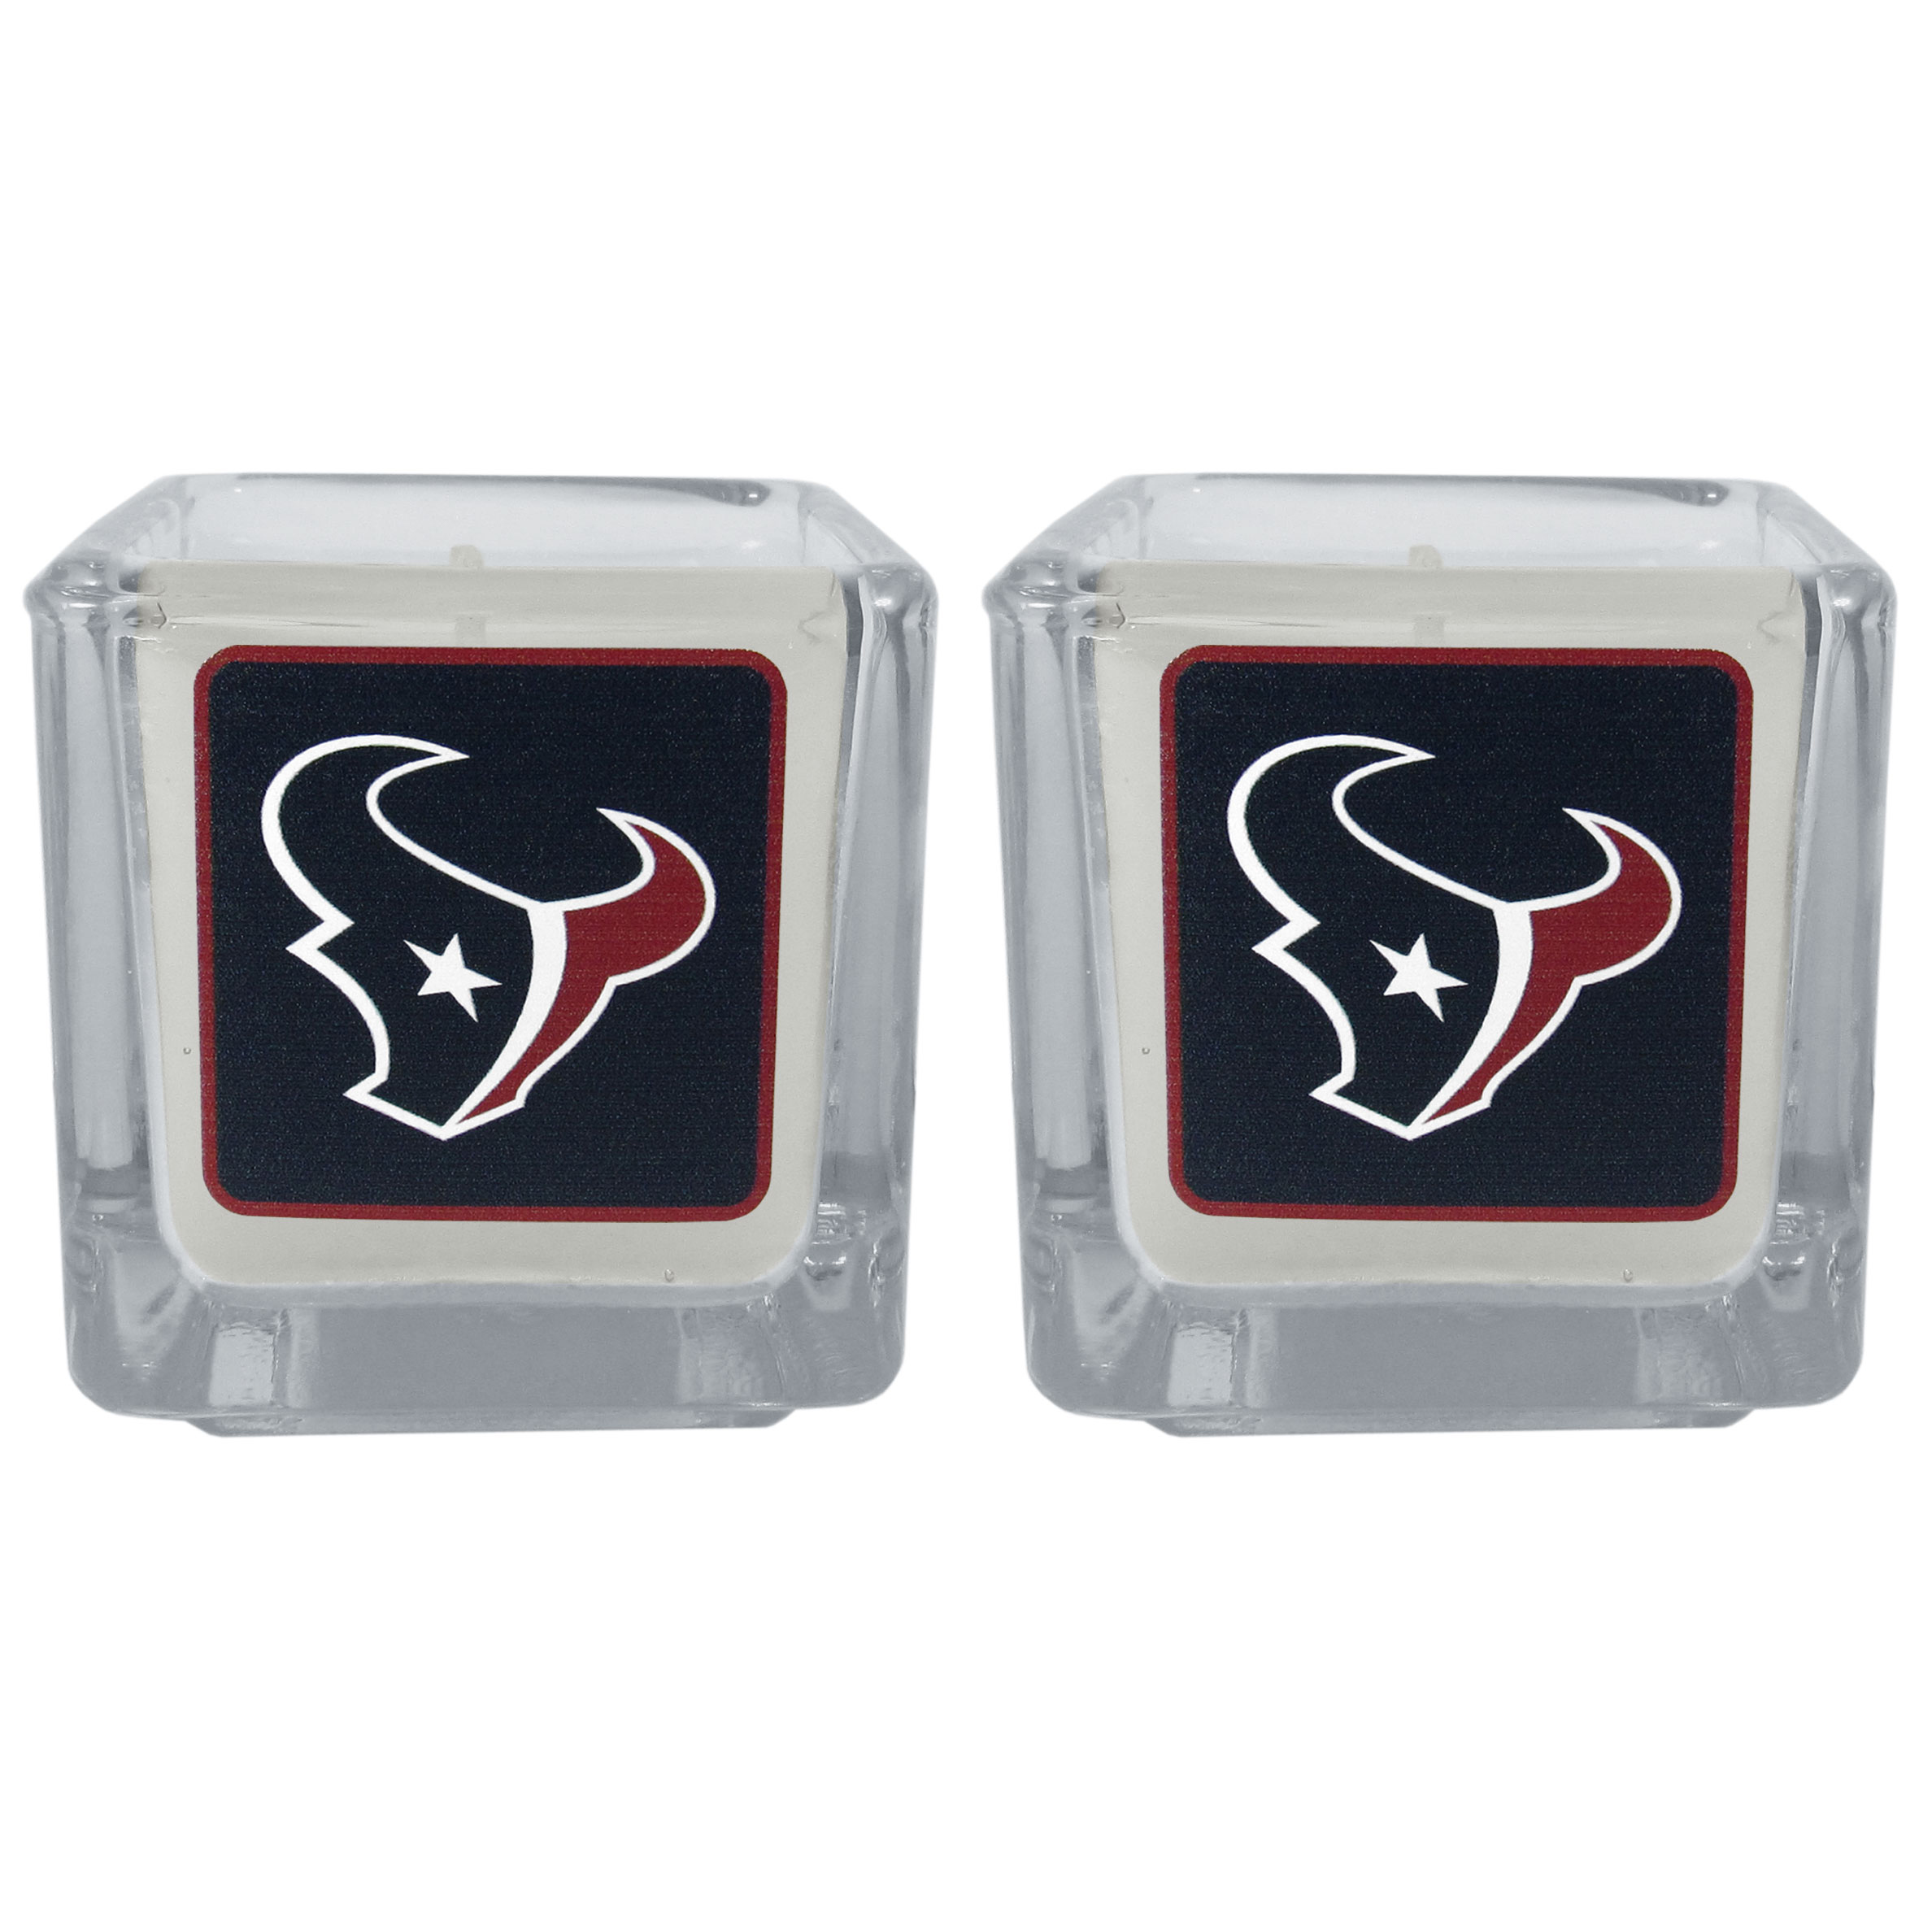 Houston Texans Graphics Candle Set - Our candle set features 2 lightly vanilla scented candles with the Houston Texans logo expertly printed on front. The candles are 2 inches tall in the votive style.